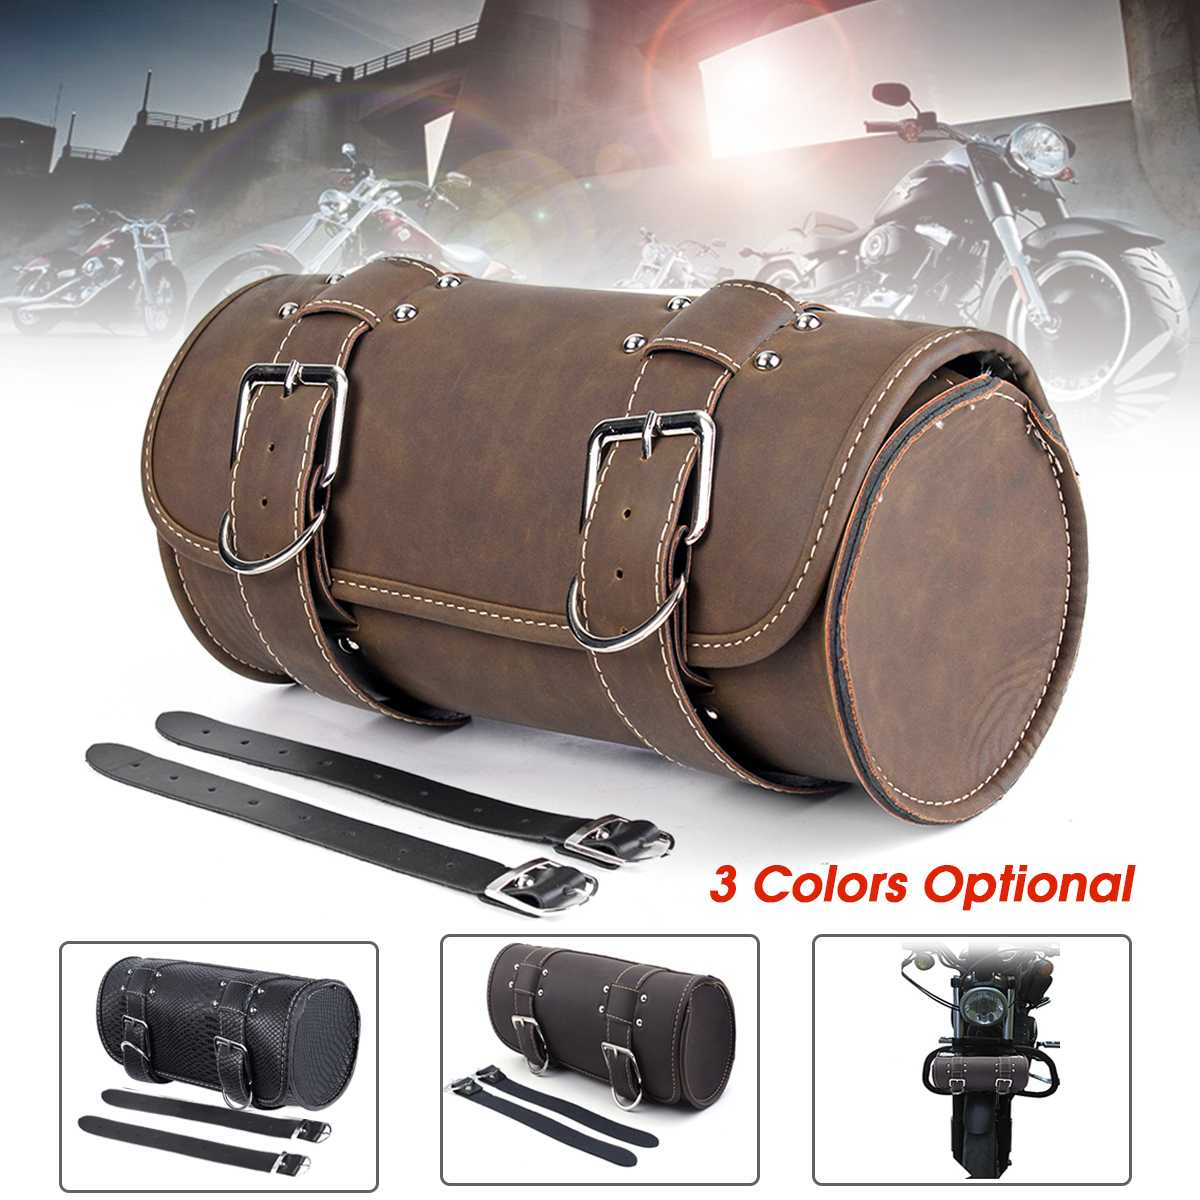 Universal Motorcycle Saddlebags Leather Storage Luggage Bags Front Tool Pouch For Harley Sportster